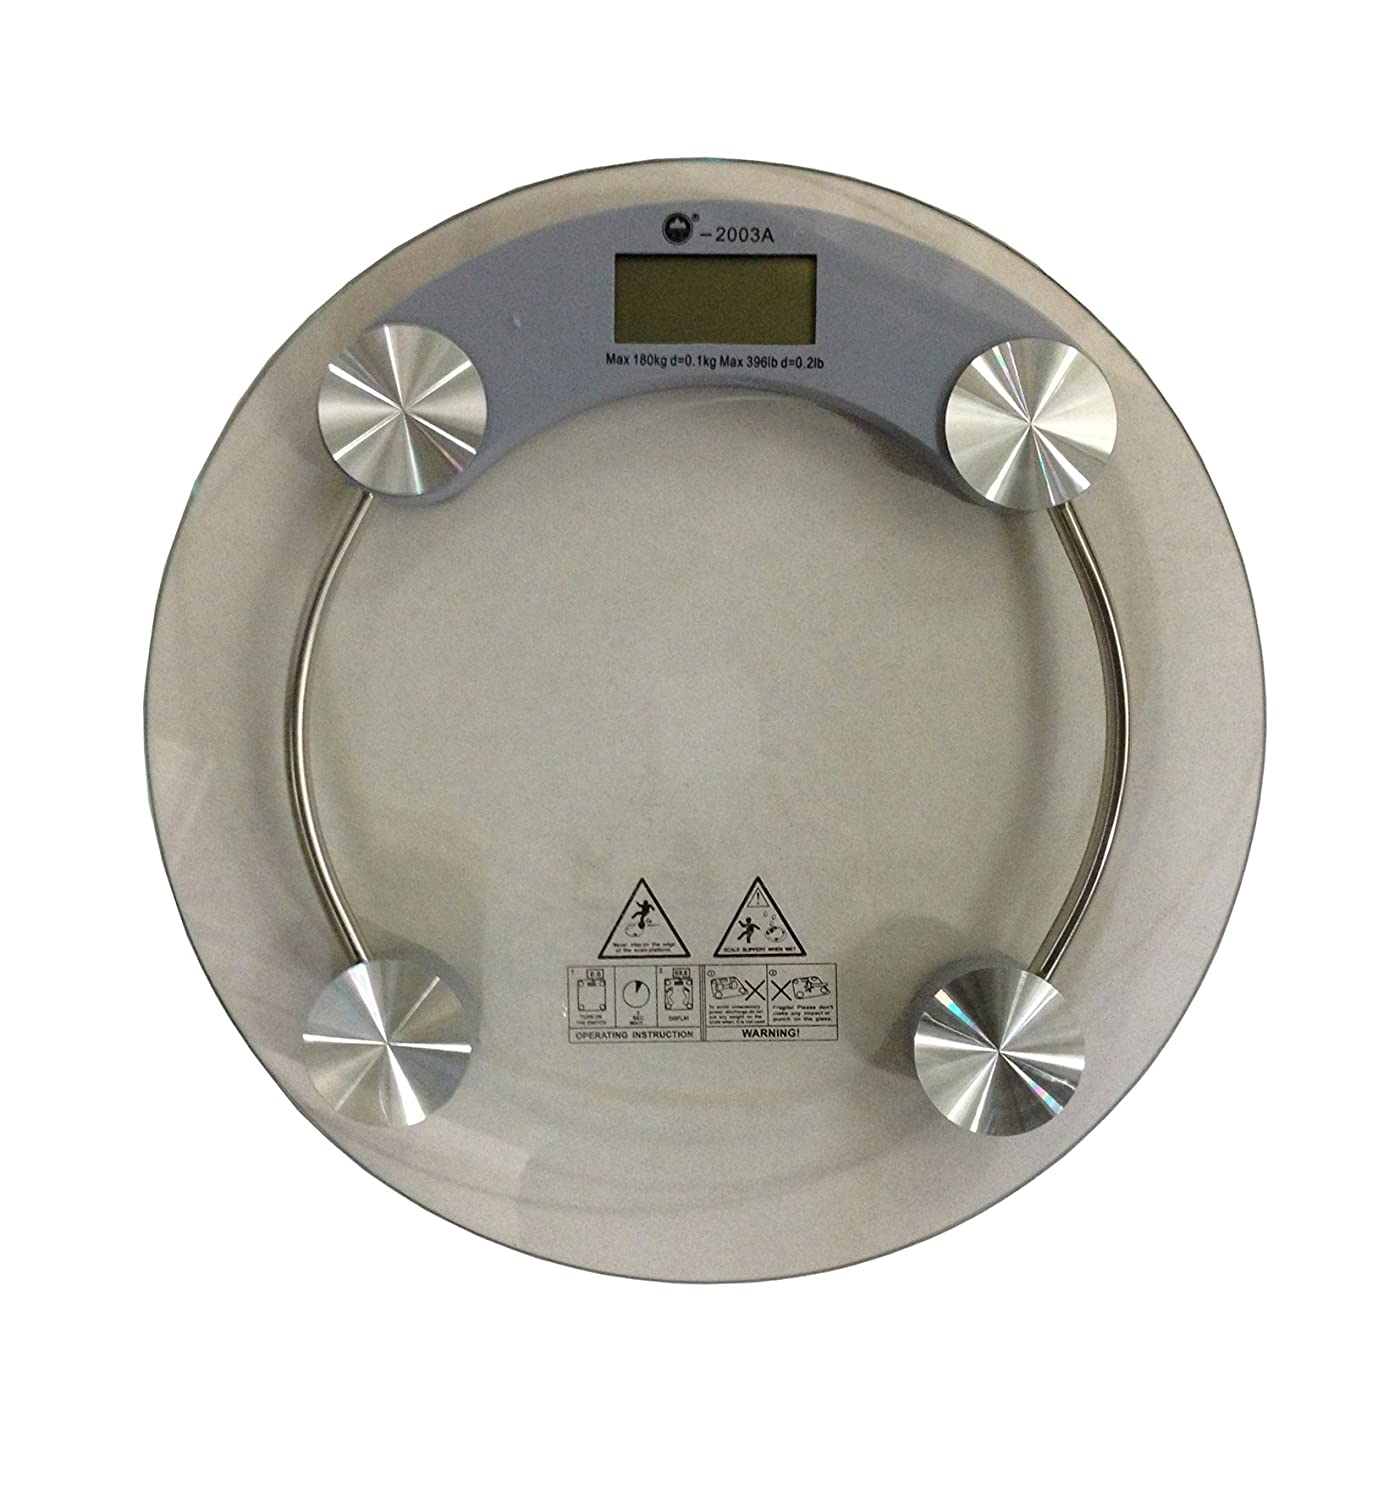 180 KG DIGITAL ELECTRONIC GLASS LCD BATHROOM BODY WEIGHING SCALE MEASURING SCALE (Round Plain)